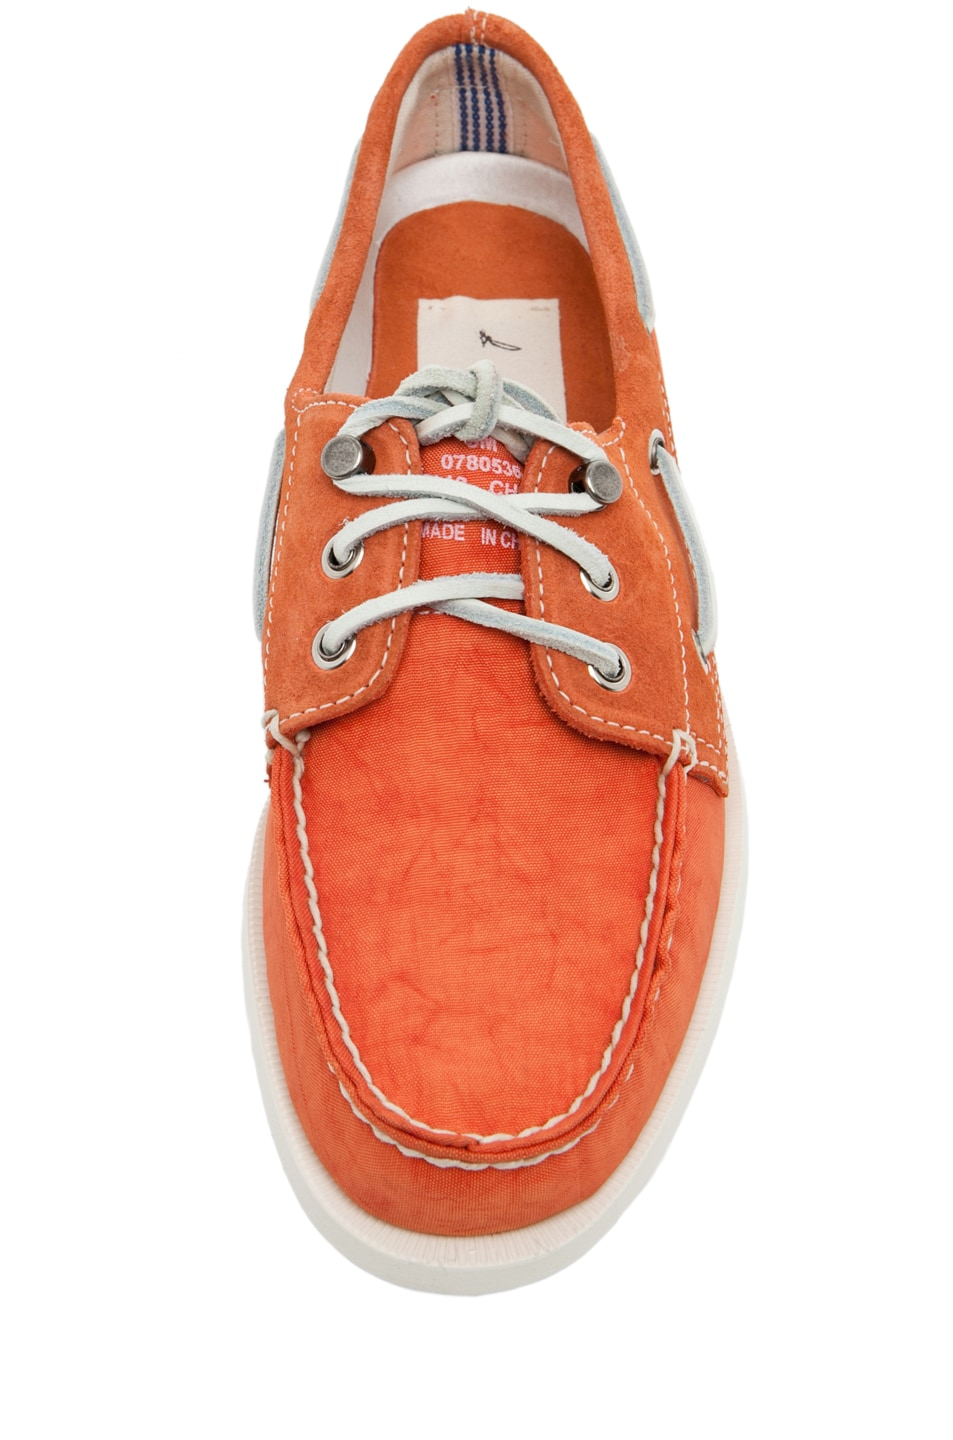 Image 4 of Band of Outsiders x Sperry Top-Sider 3 Eye Boat Shoe in Orange